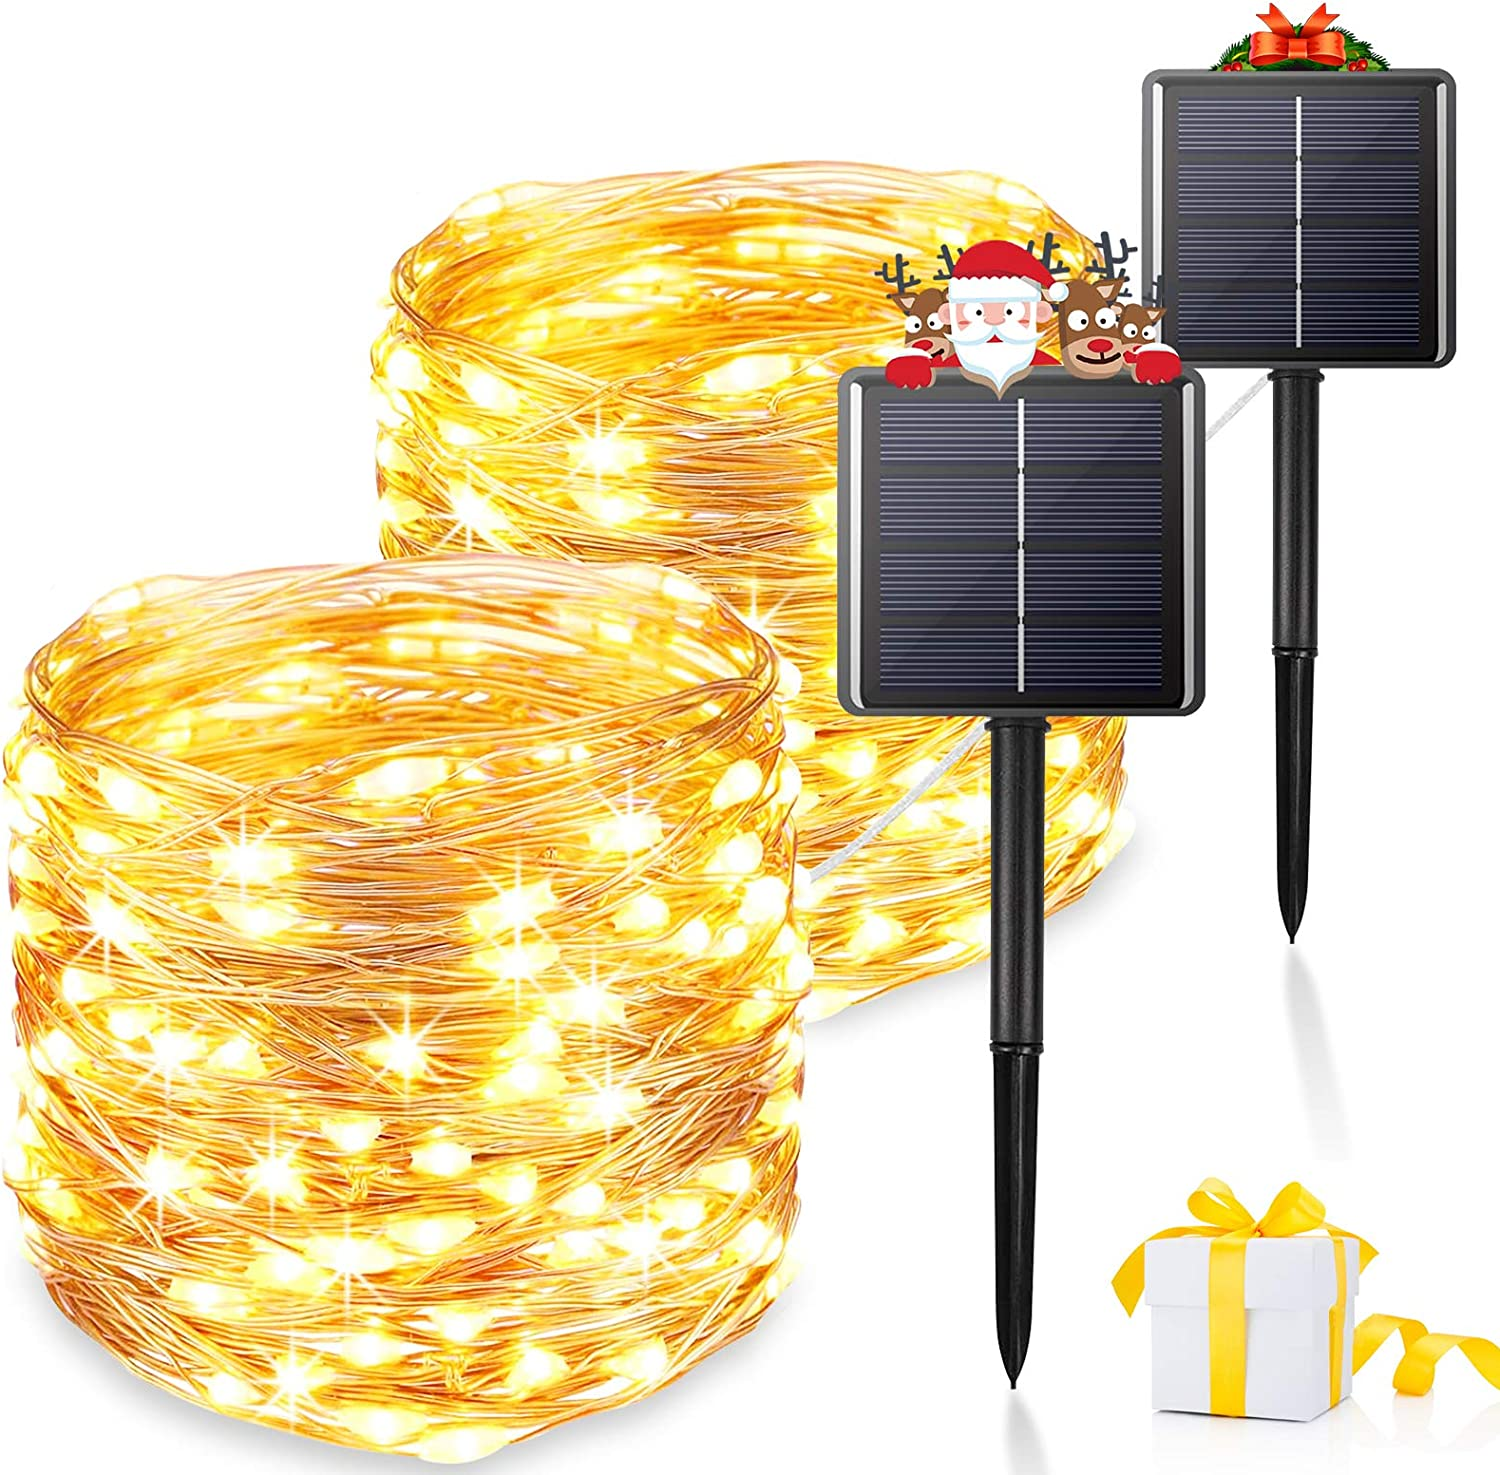 Solar String-Lights Outdoor, 2-Pack Upgraded 8 Modes&Total 480 LED Starbright Solar Light with 1200 Mah Battery Backup,157Ft Solar-Fairy-Light Outdoor for Garden Patio Decorations (Warm white-2pcs)